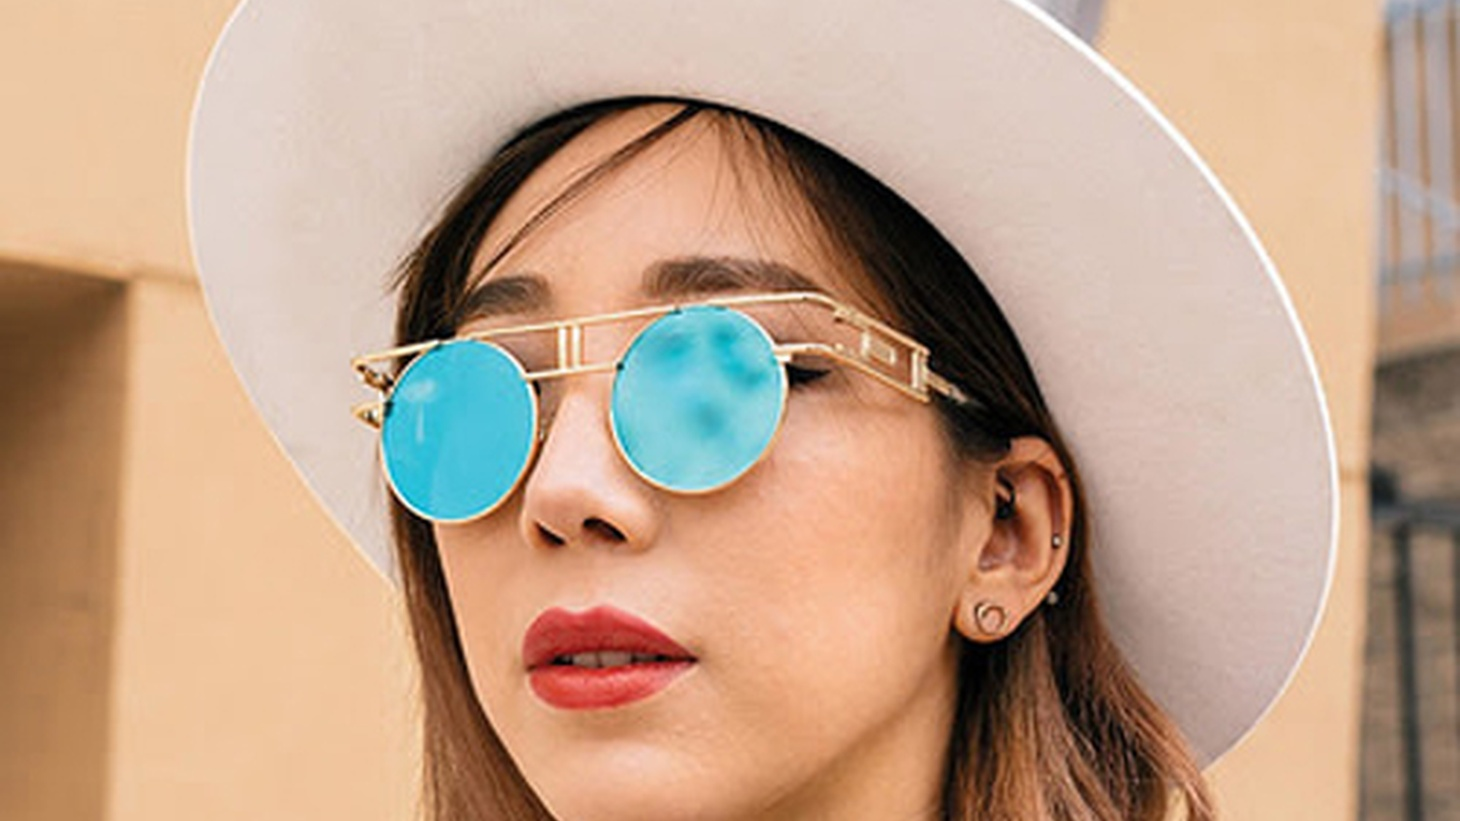 TOKiMONSTA is known for her unique electronic music skills as a producer and DJ.